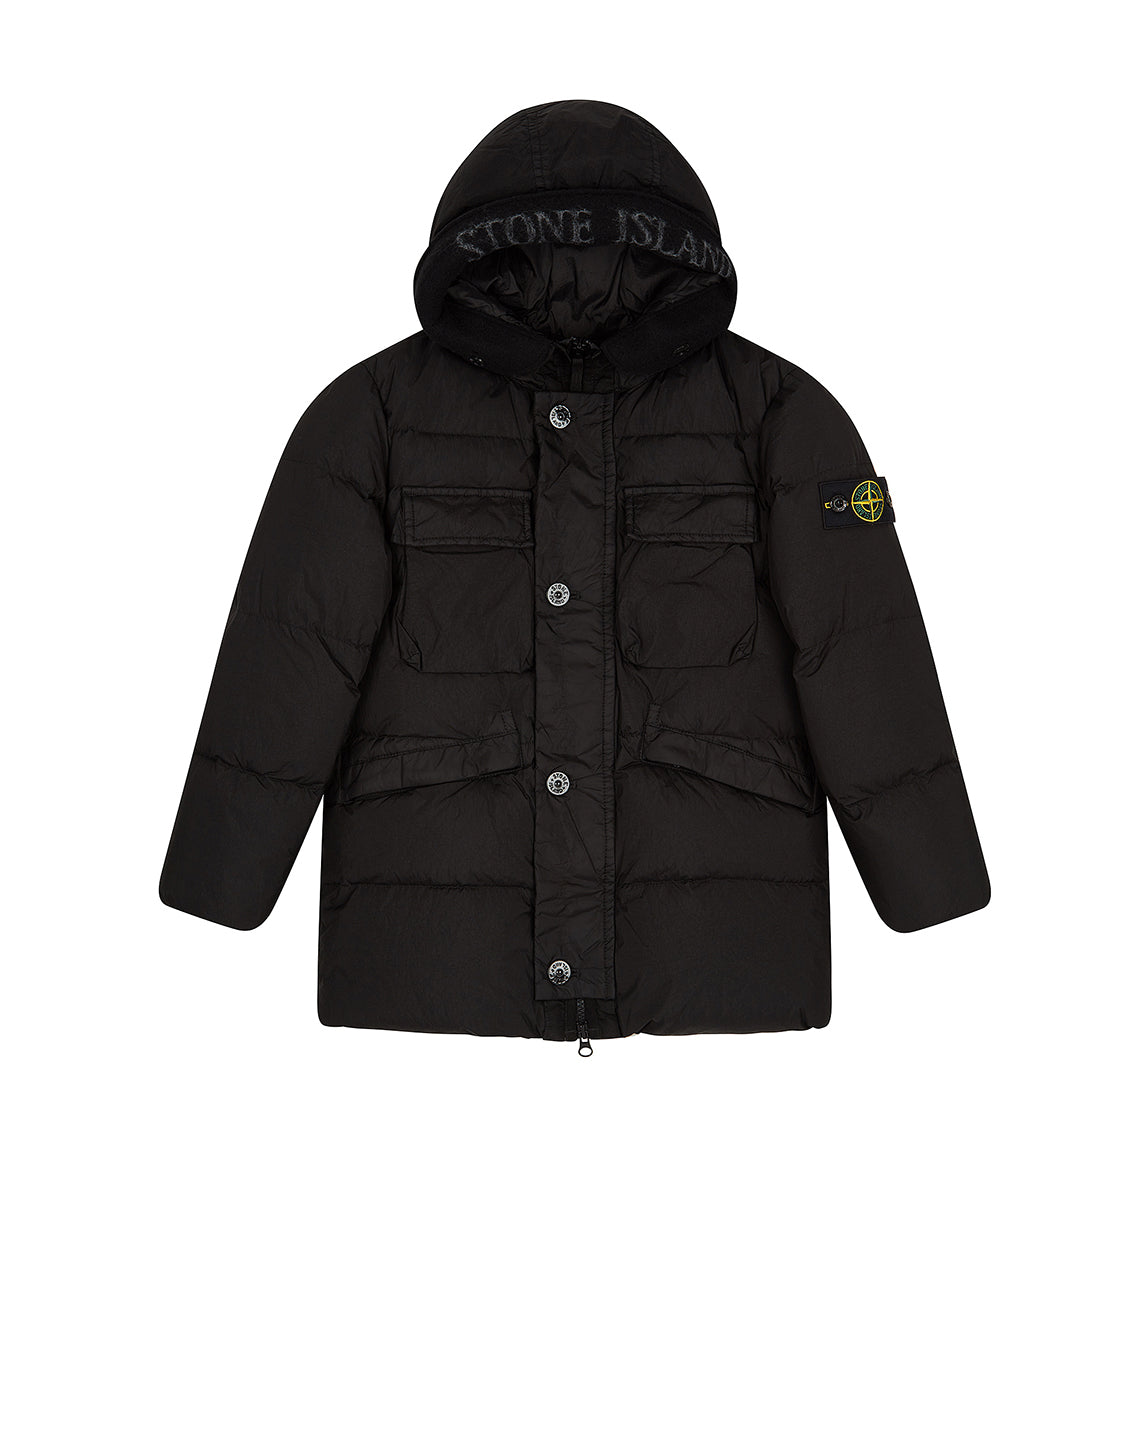 40233 Hooded Down Jacket in Black